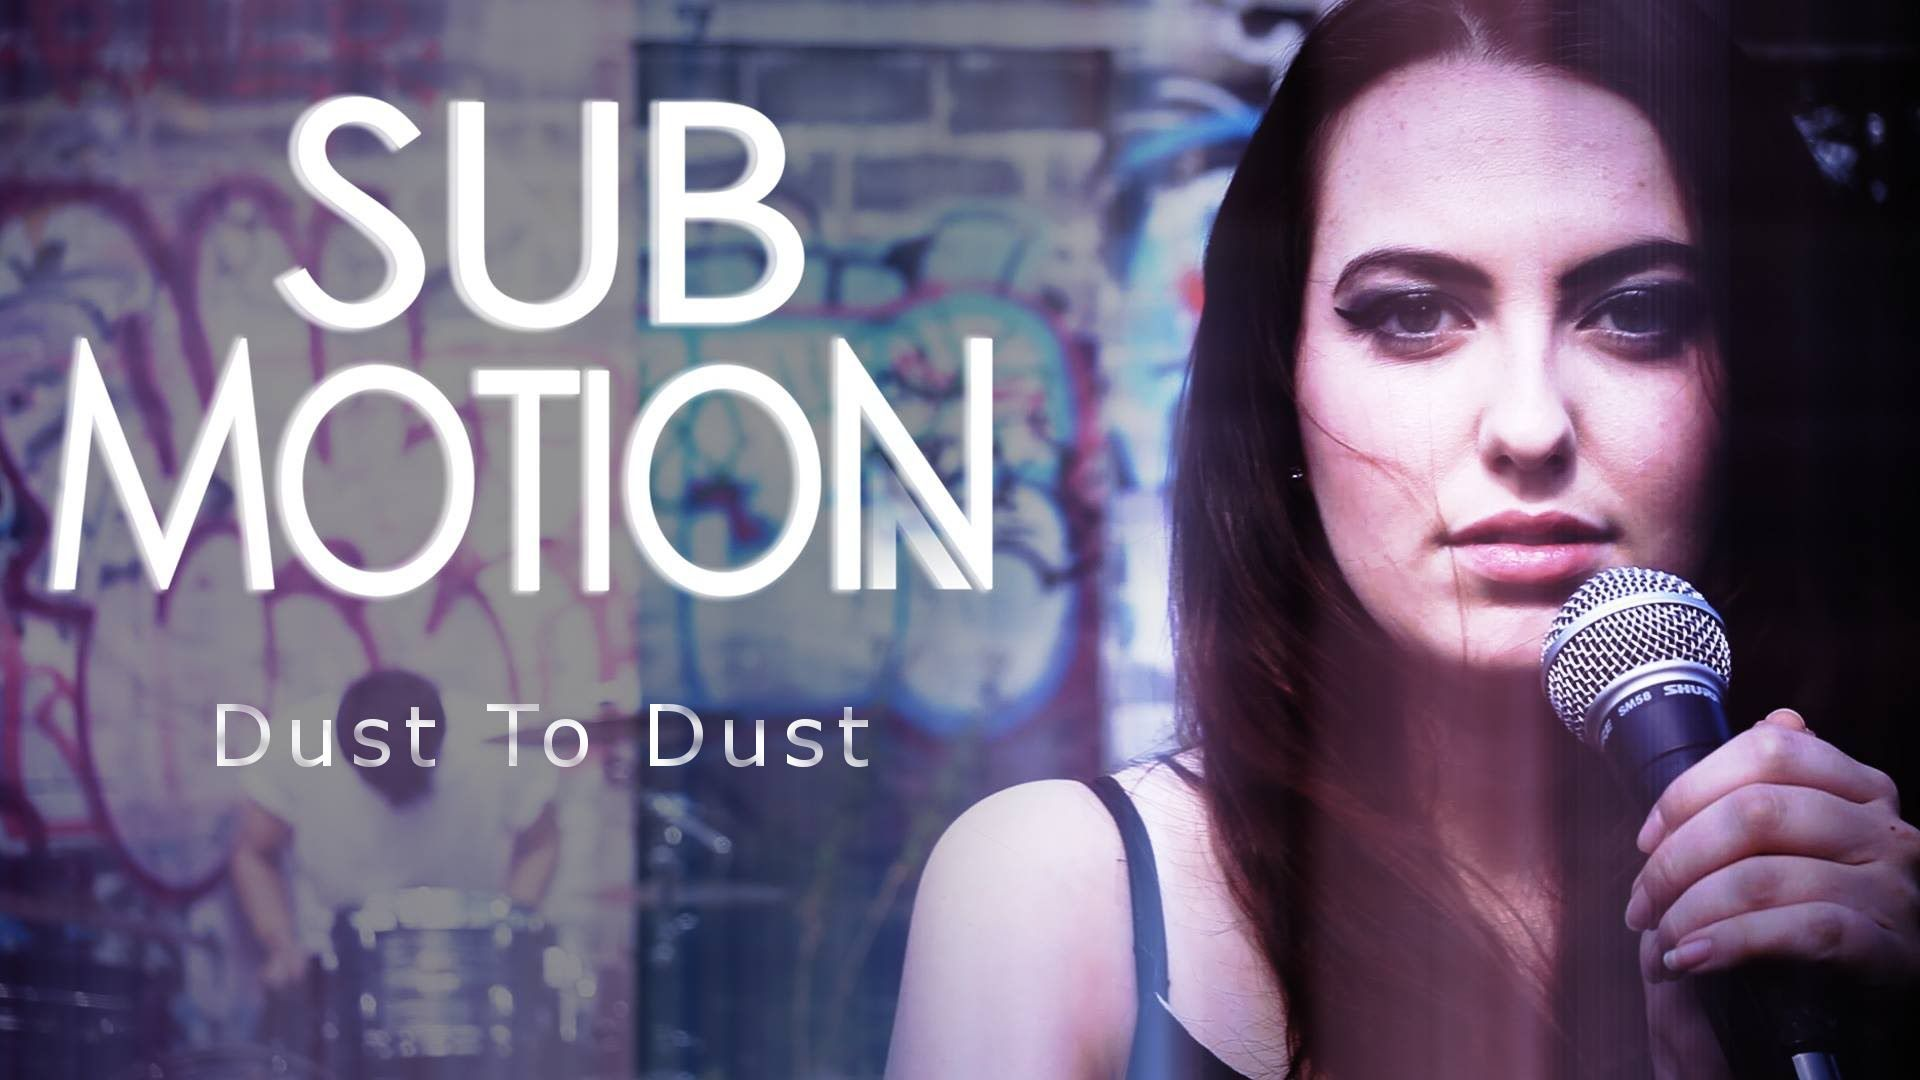 Sub Motion - Dust To Dust (OFFICIAL VIDEO)